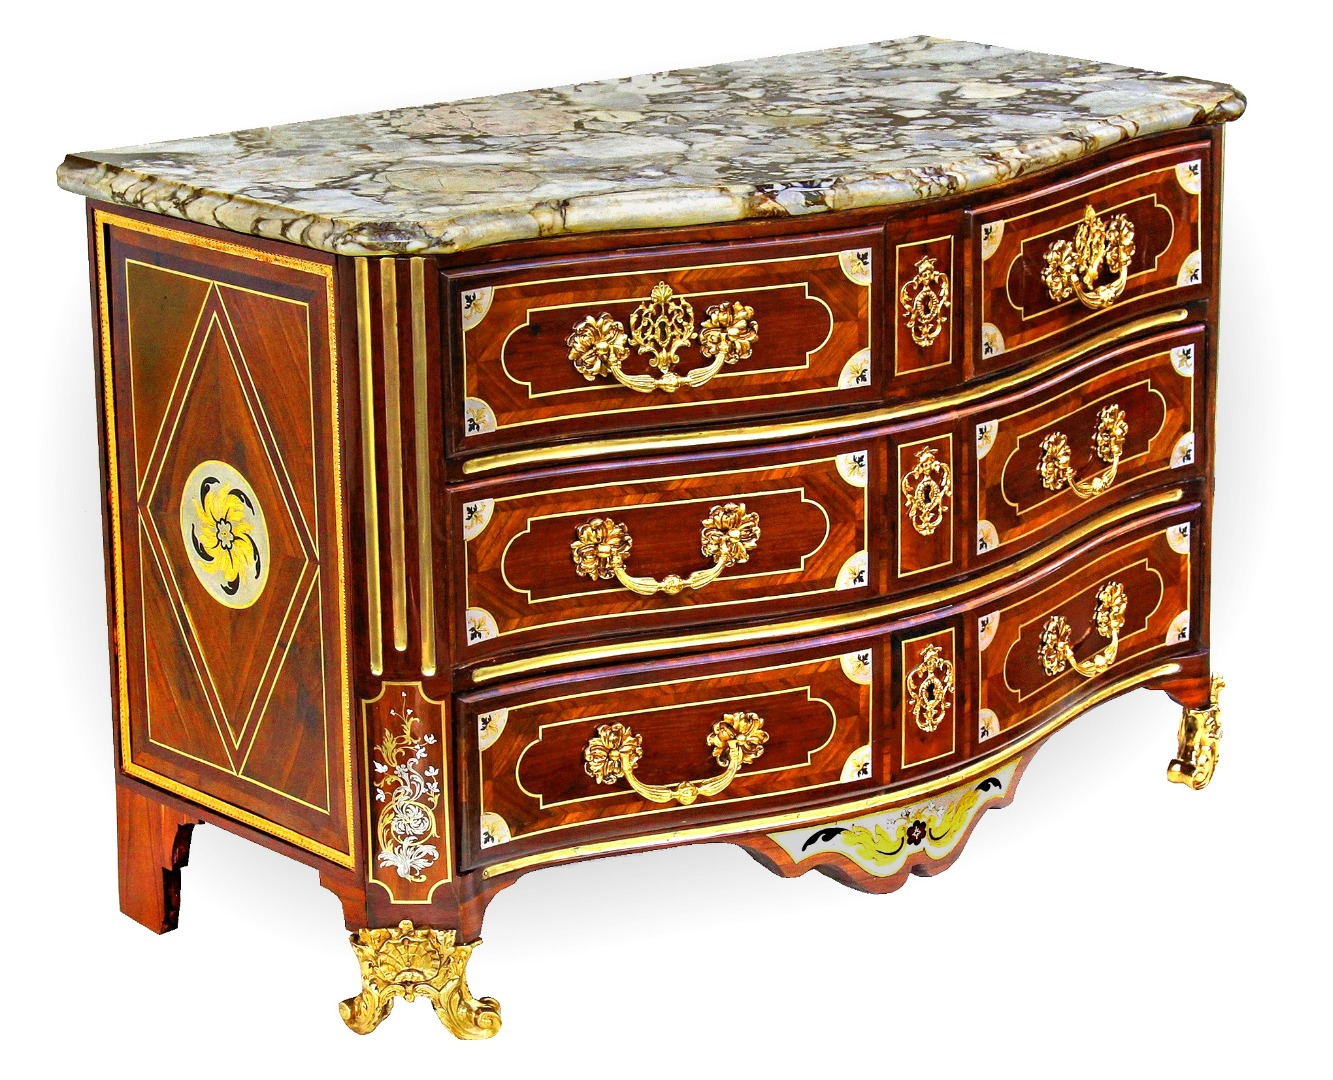 Commode Louis XIV estampillée J*L*F DELORME